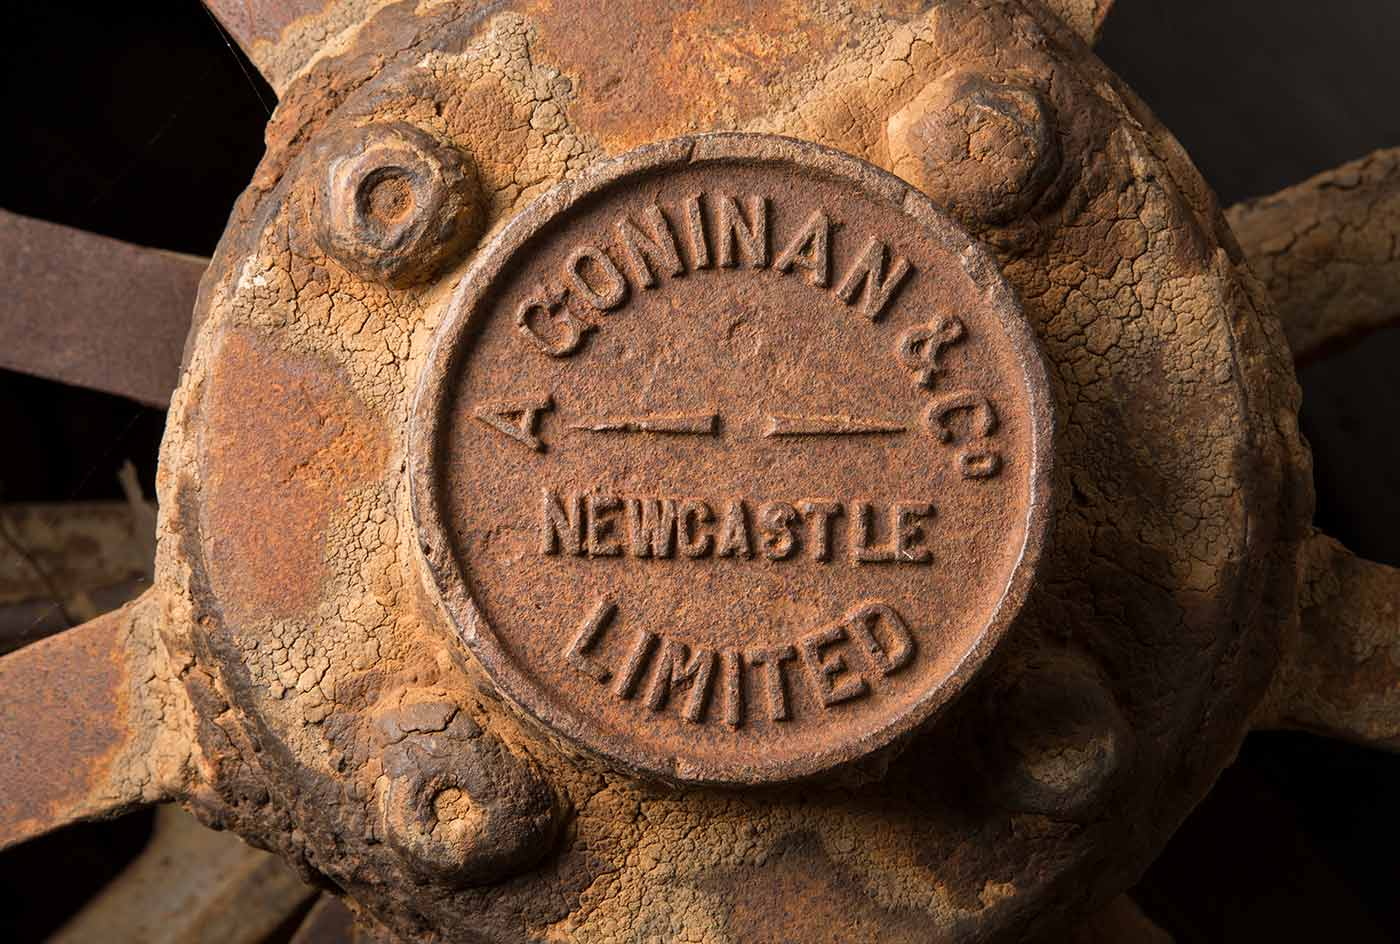 A cook's galley in the form of a metal-clad, timber and iron-framed box raised on wagon wheels. This view is of a close up of a wheel hub with the words 'A Coninan & Co, Newcastle Limited' stamped on it. - click to view larger image